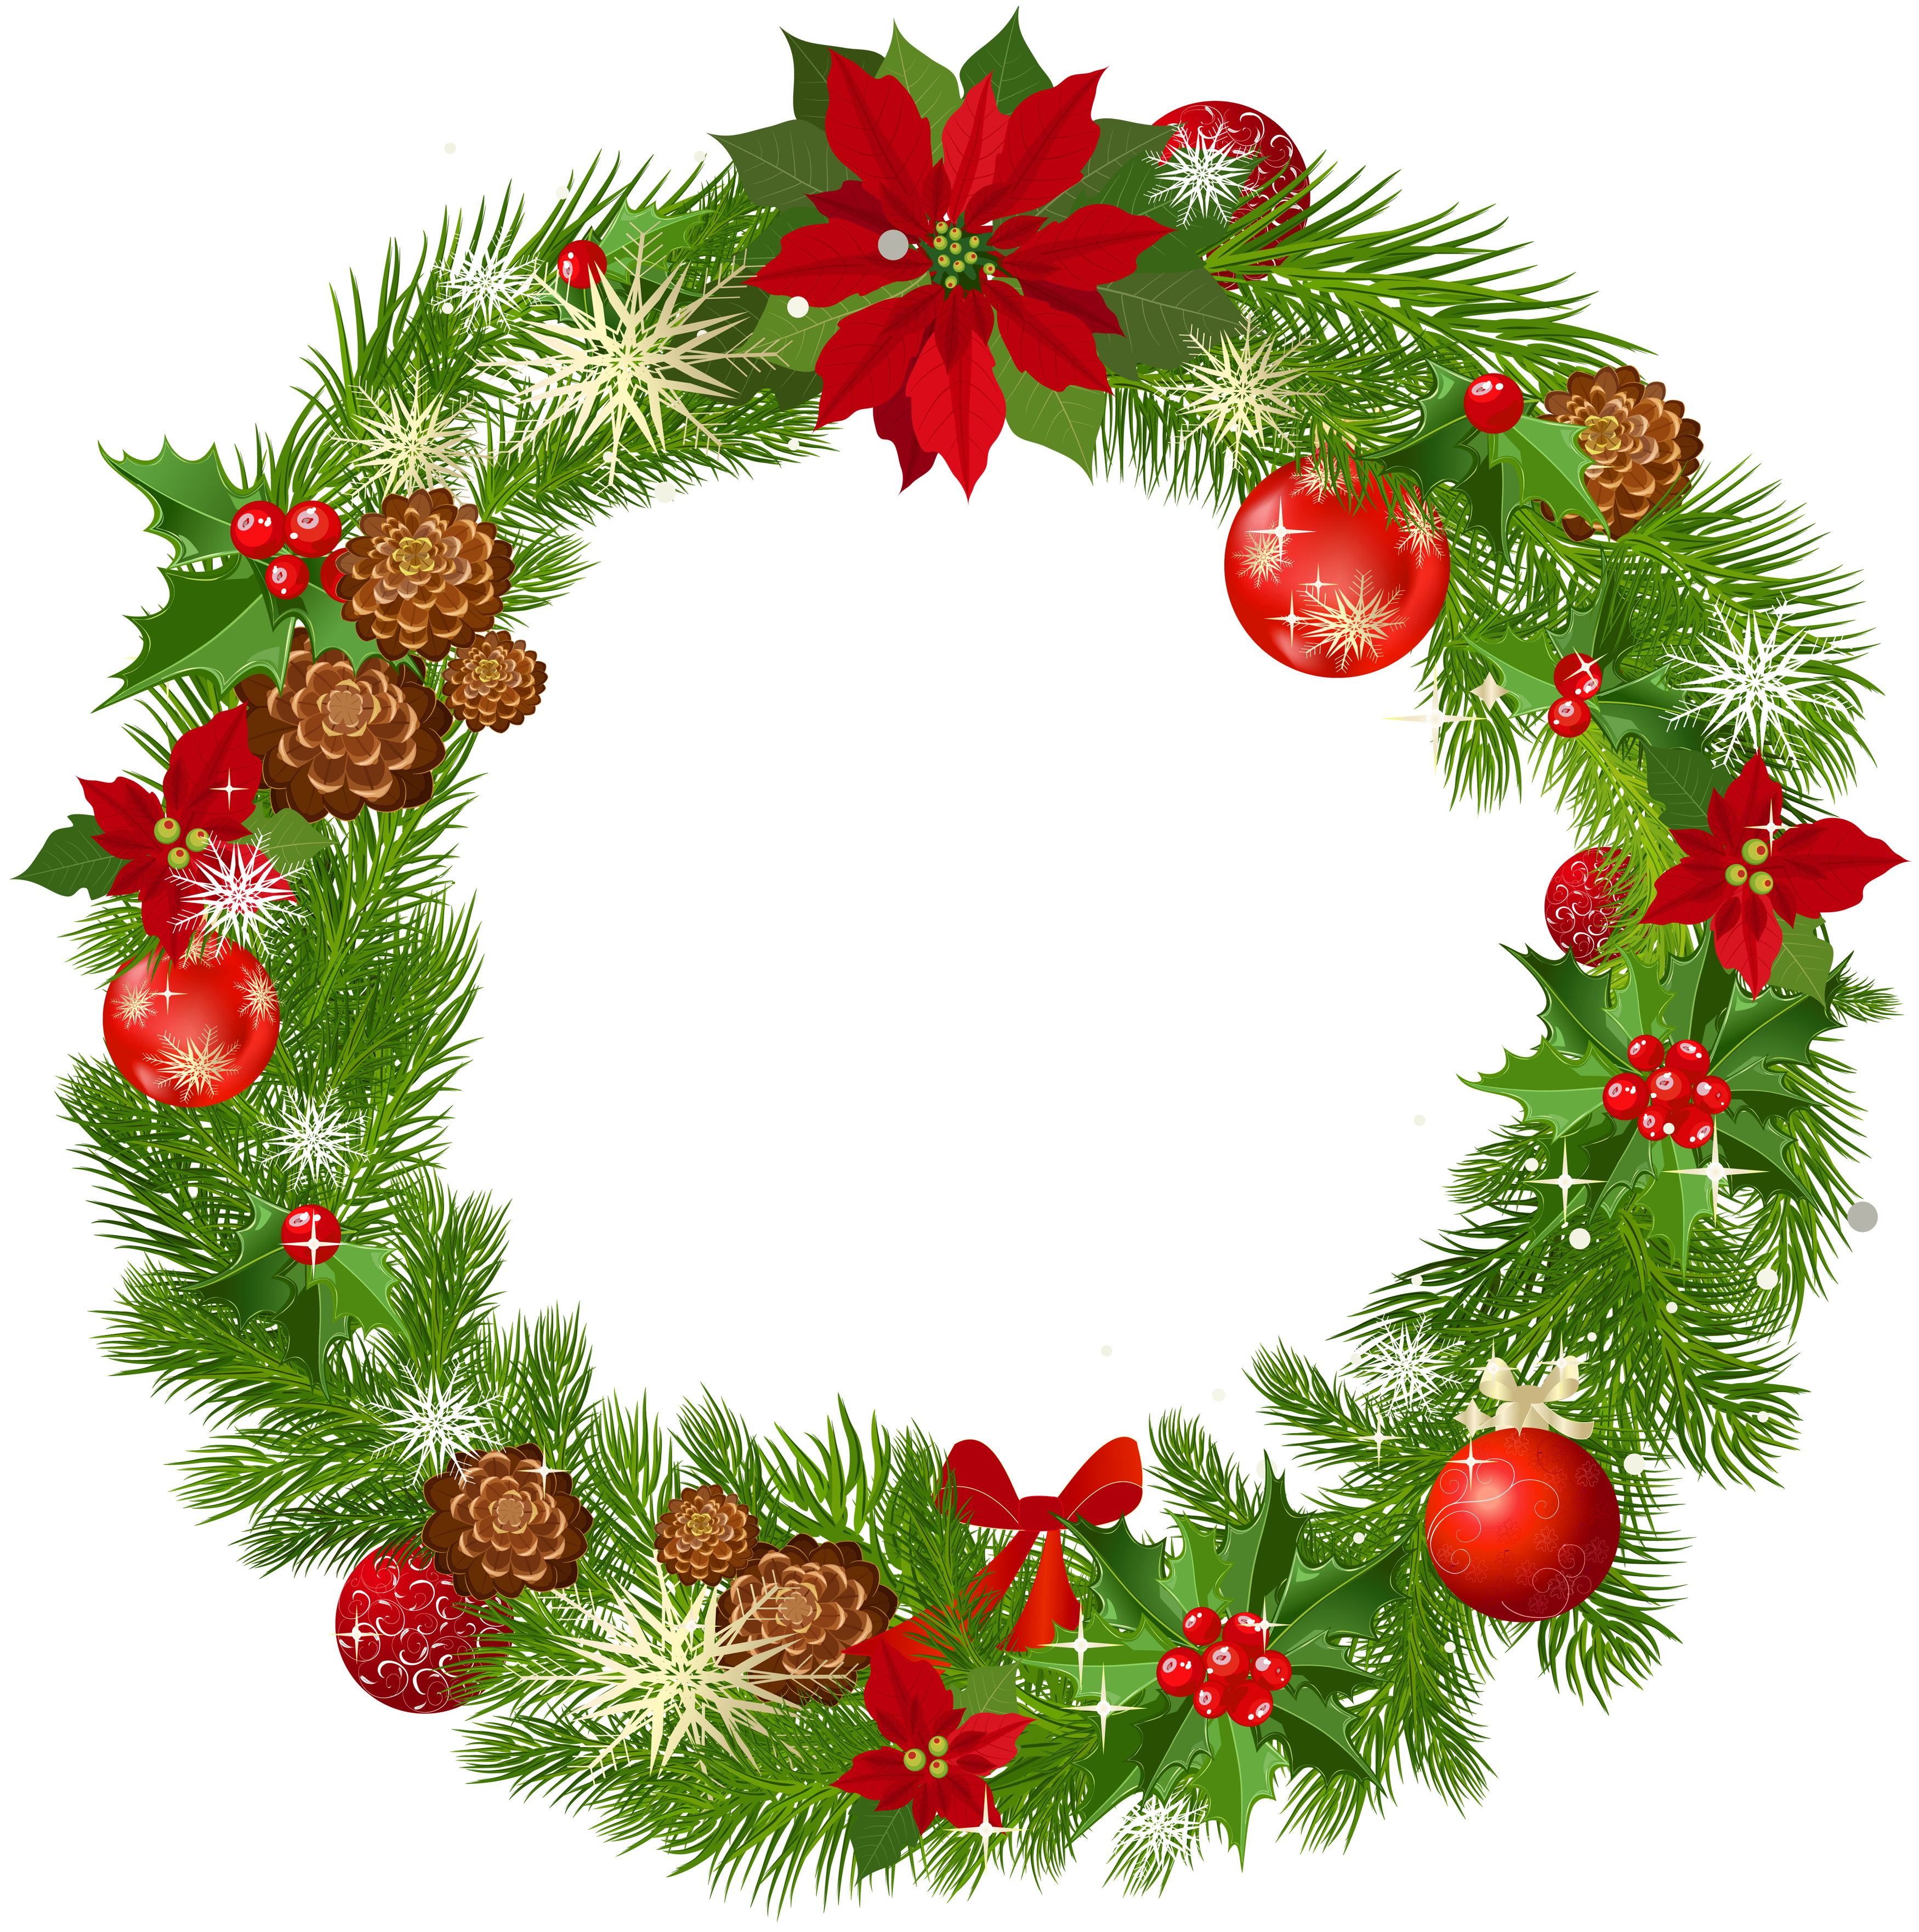 Christmas Garland Png - Christmas Garland Clipart   Free download best Christmas Garland ...